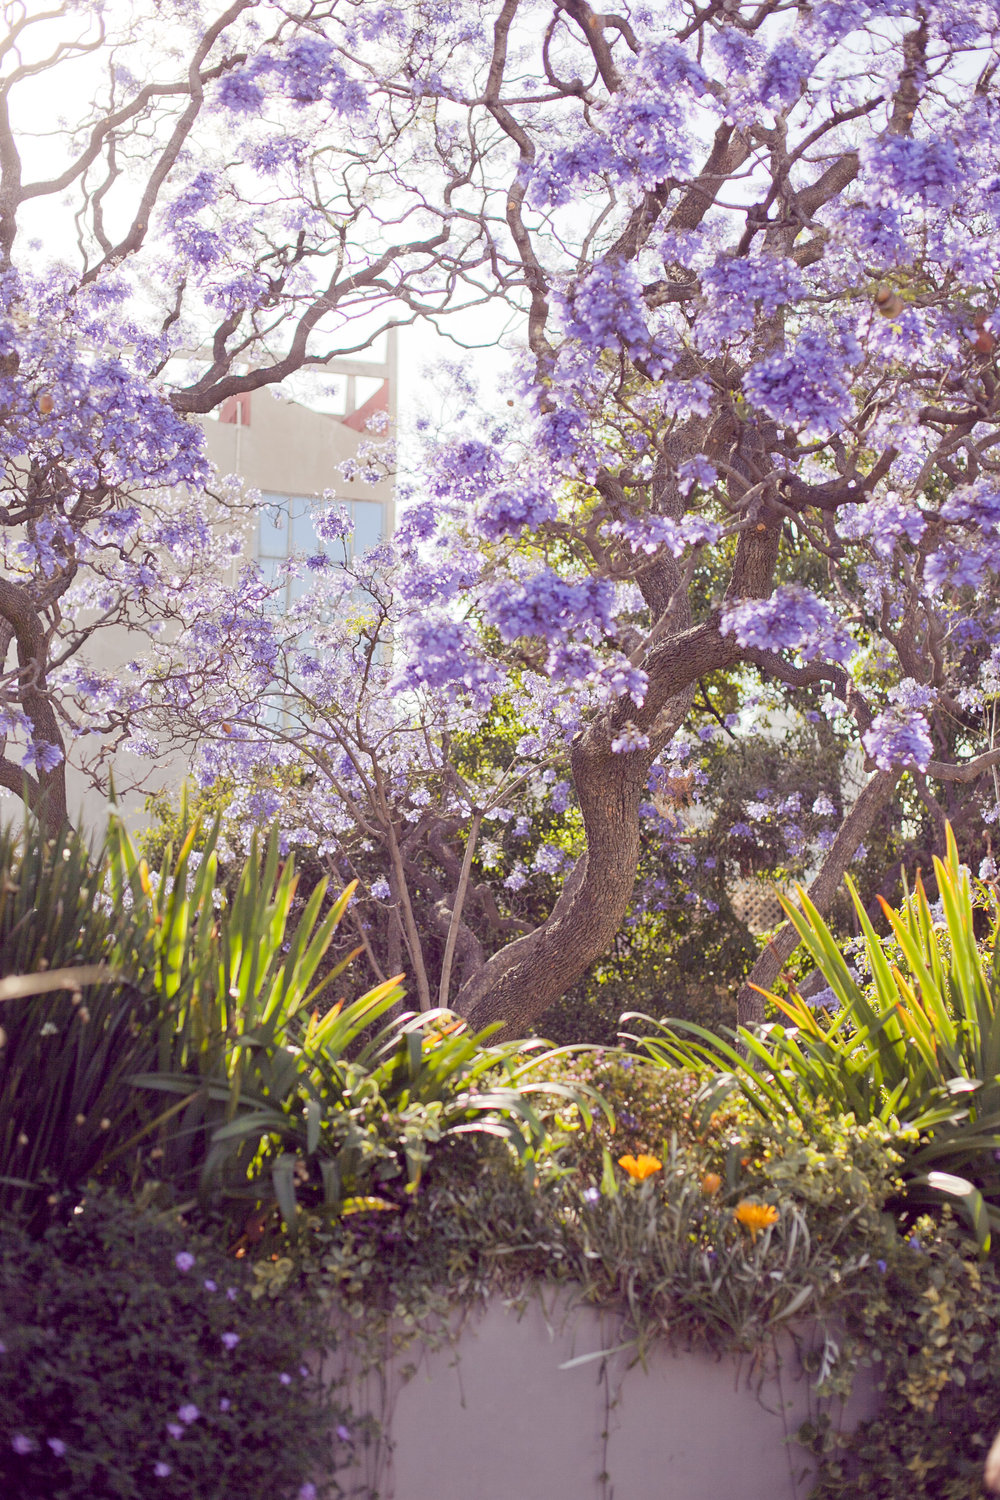 Copy of jacaranda tree in bloom